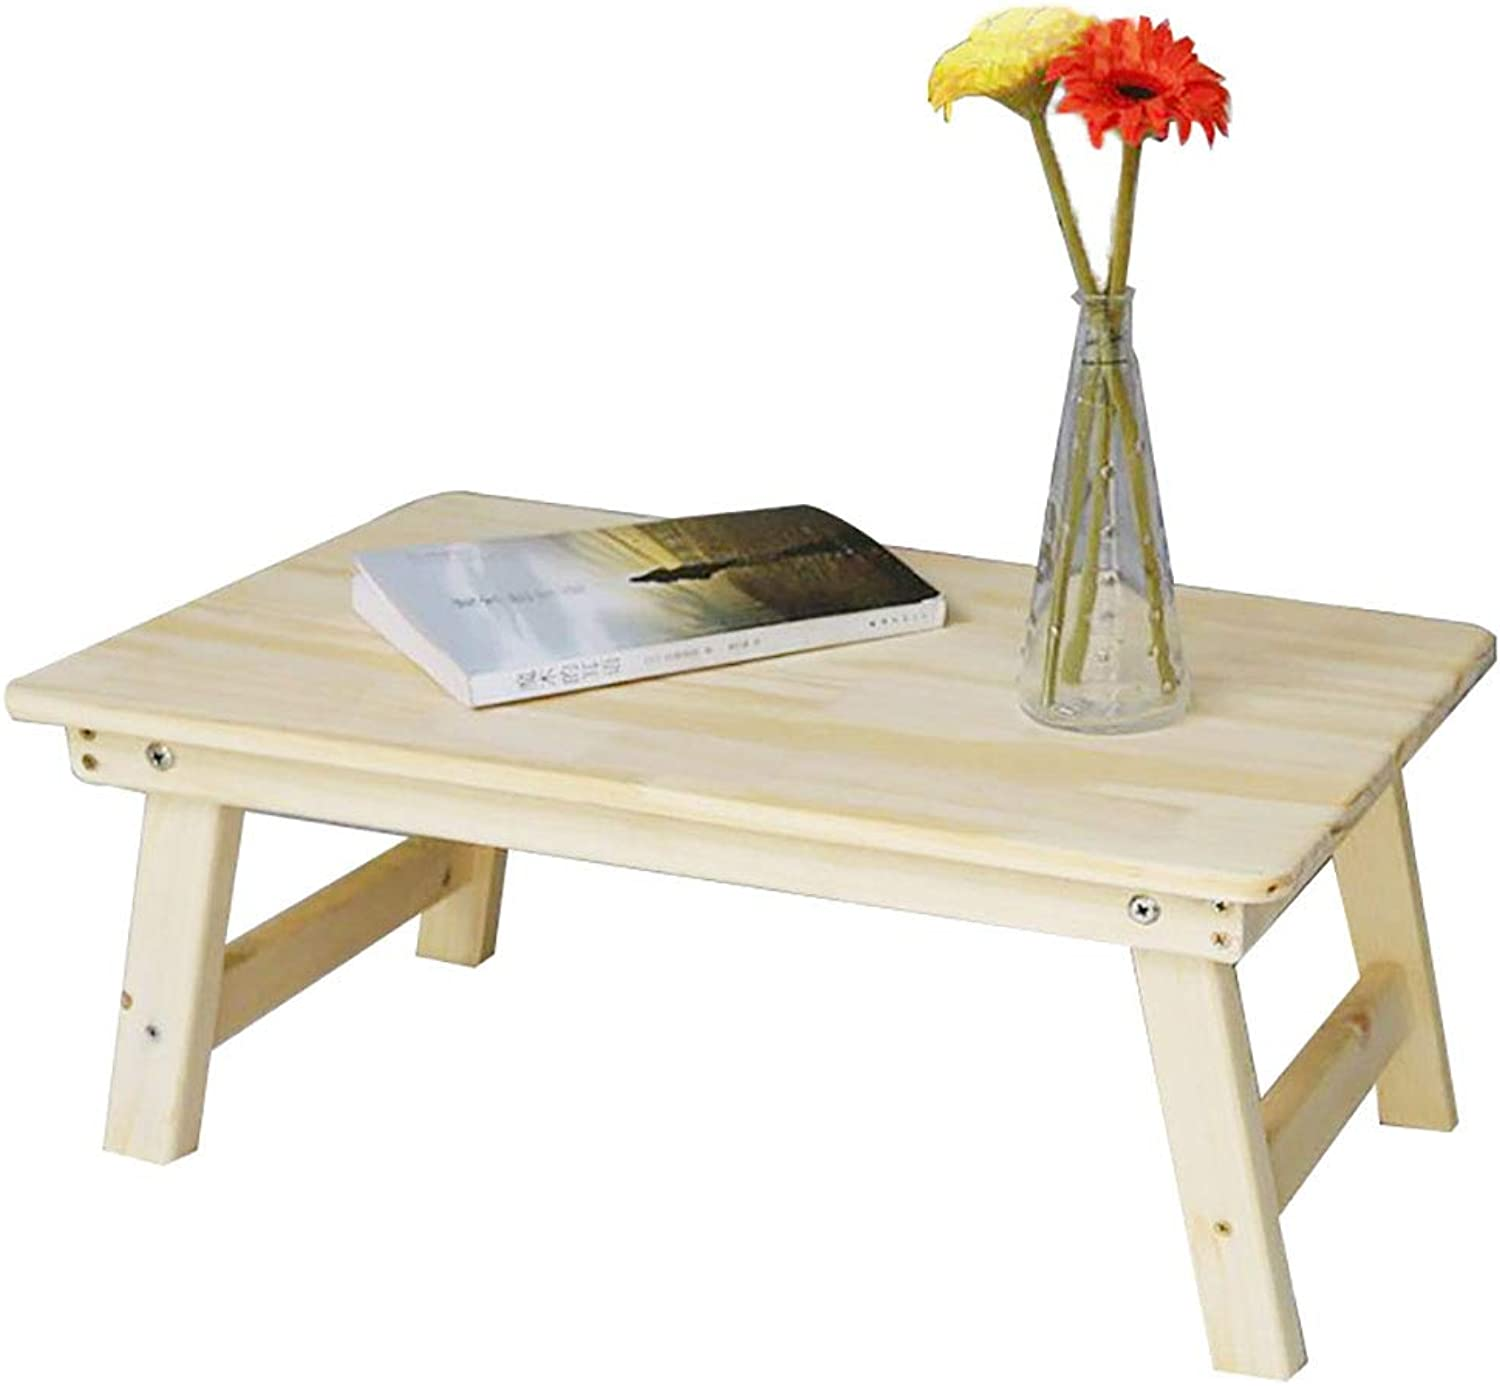 Bed Desk Folding Bed with Small Table Dormitory College Student Solid Wood Simple Laptop Desk Wood